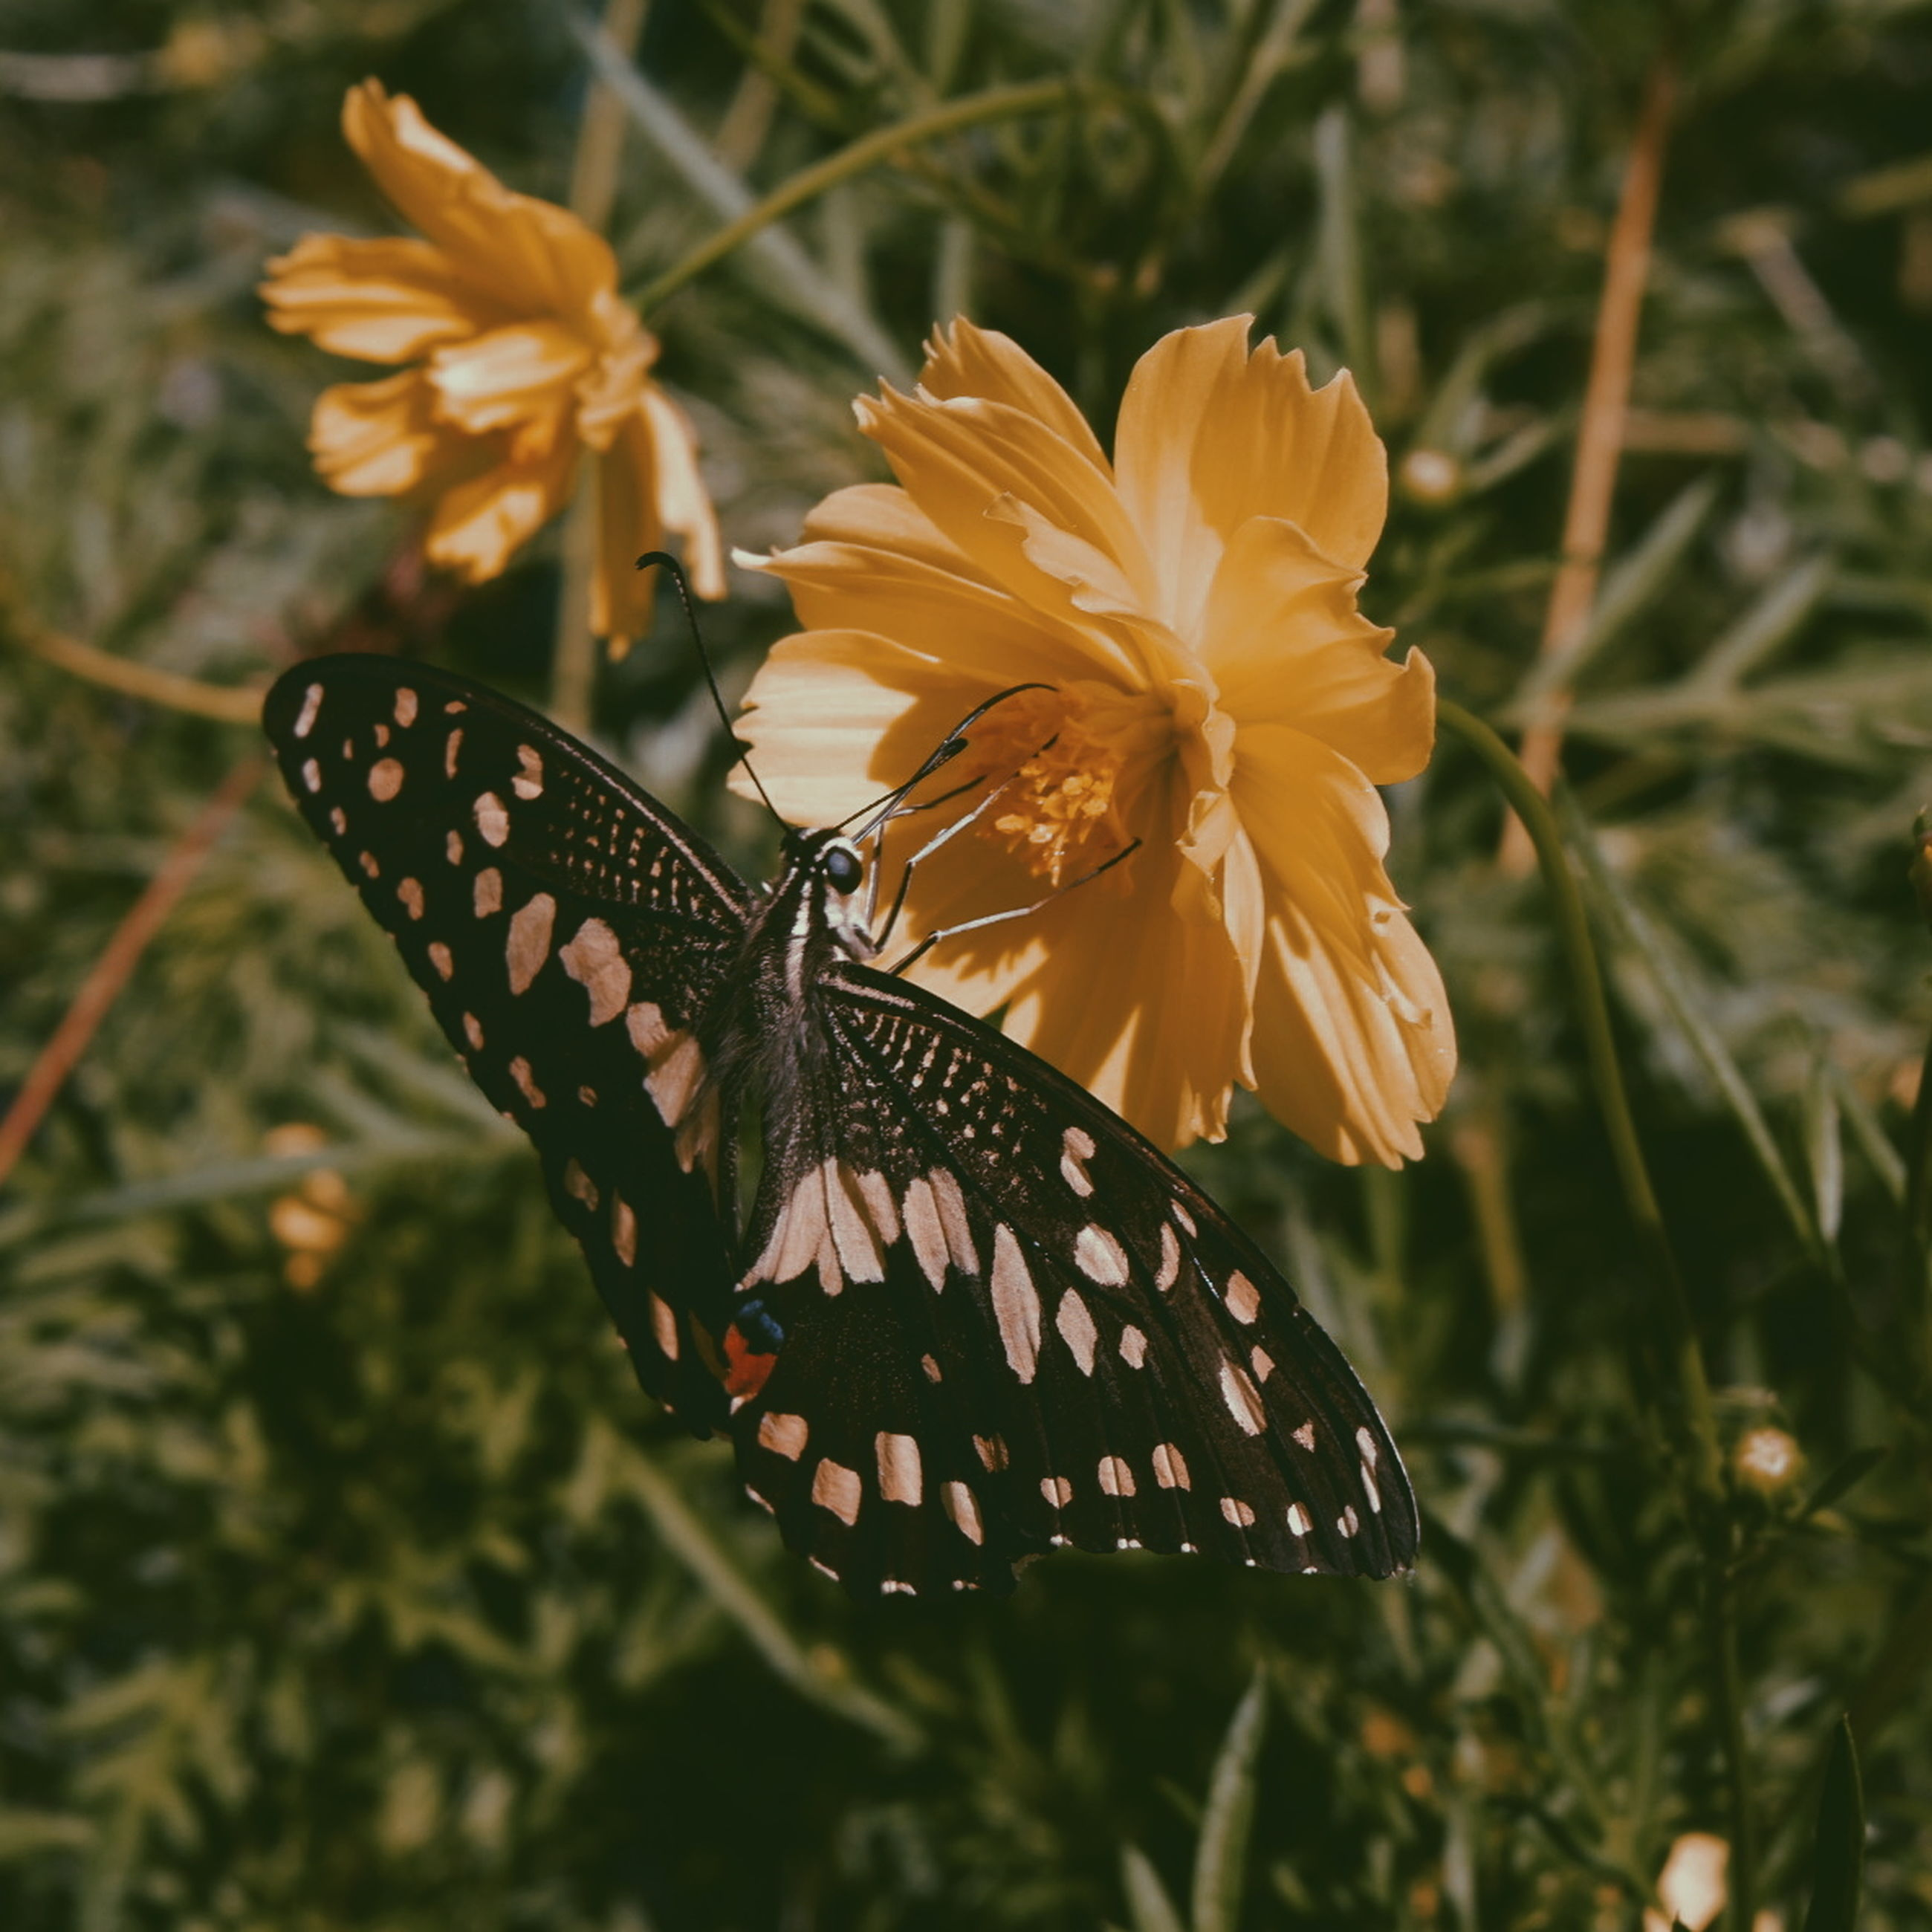 flower, flowering plant, invertebrate, beauty in nature, insect, animal themes, animal wildlife, one animal, butterfly - insect, animals in the wild, animal wing, plant, animal, flower head, fragility, petal, freshness, close-up, vulnerability, nature, pollination, no people, butterfly, pollen, outdoors